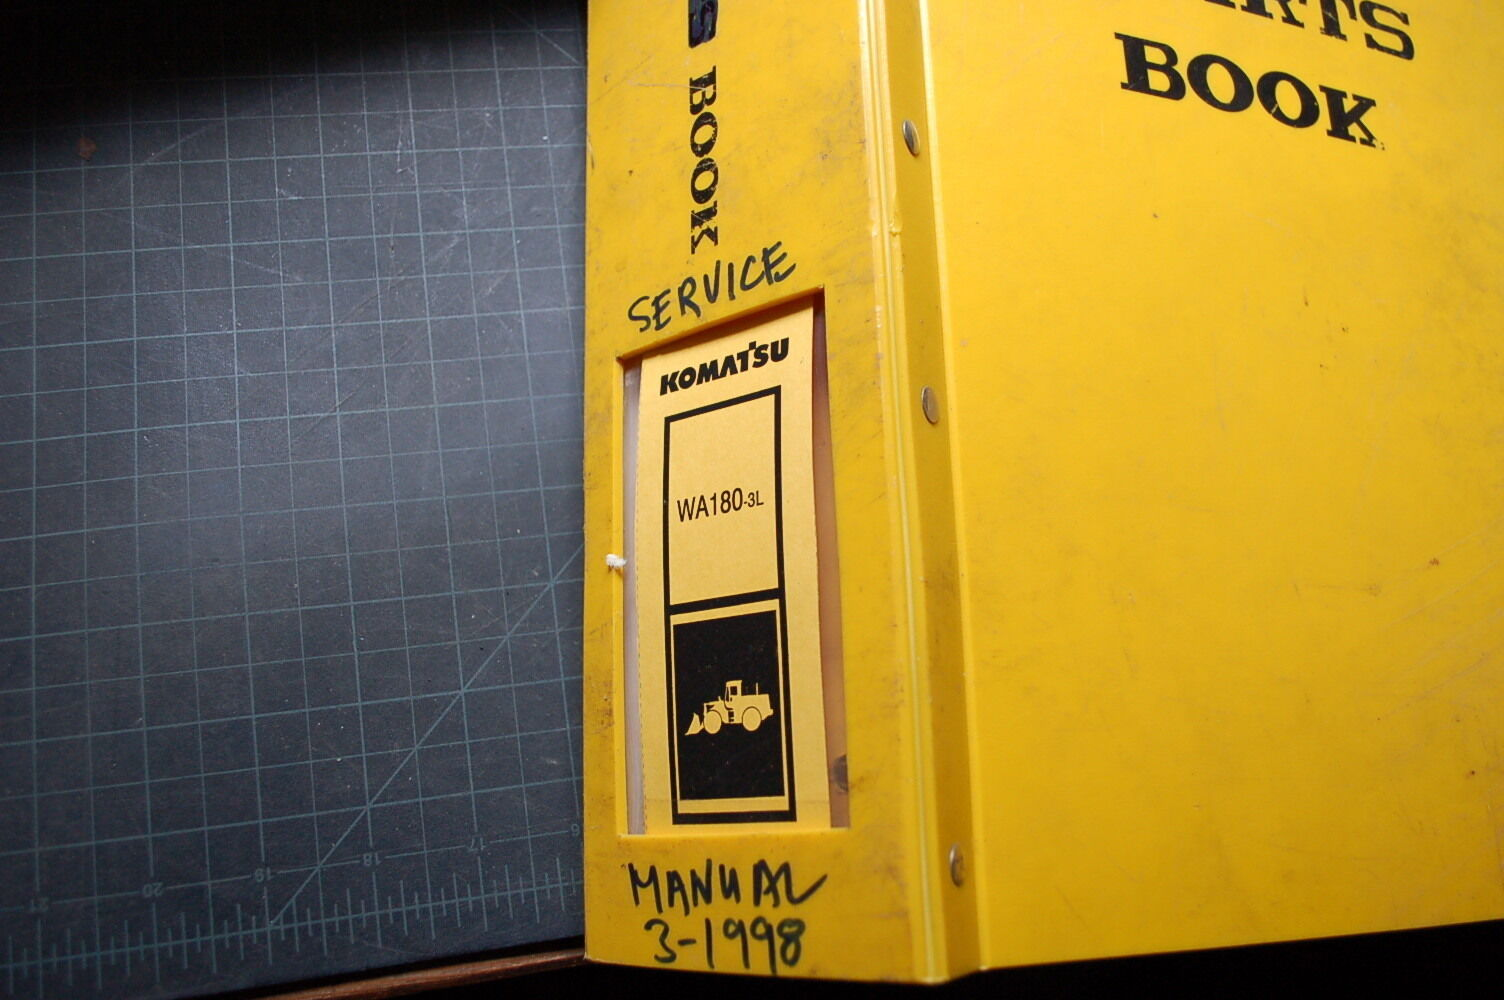 KOMATSU WA180-3L WHEEL LOADER Service Manual book shop repair owner front  end 1 of 1Only 1 available ...